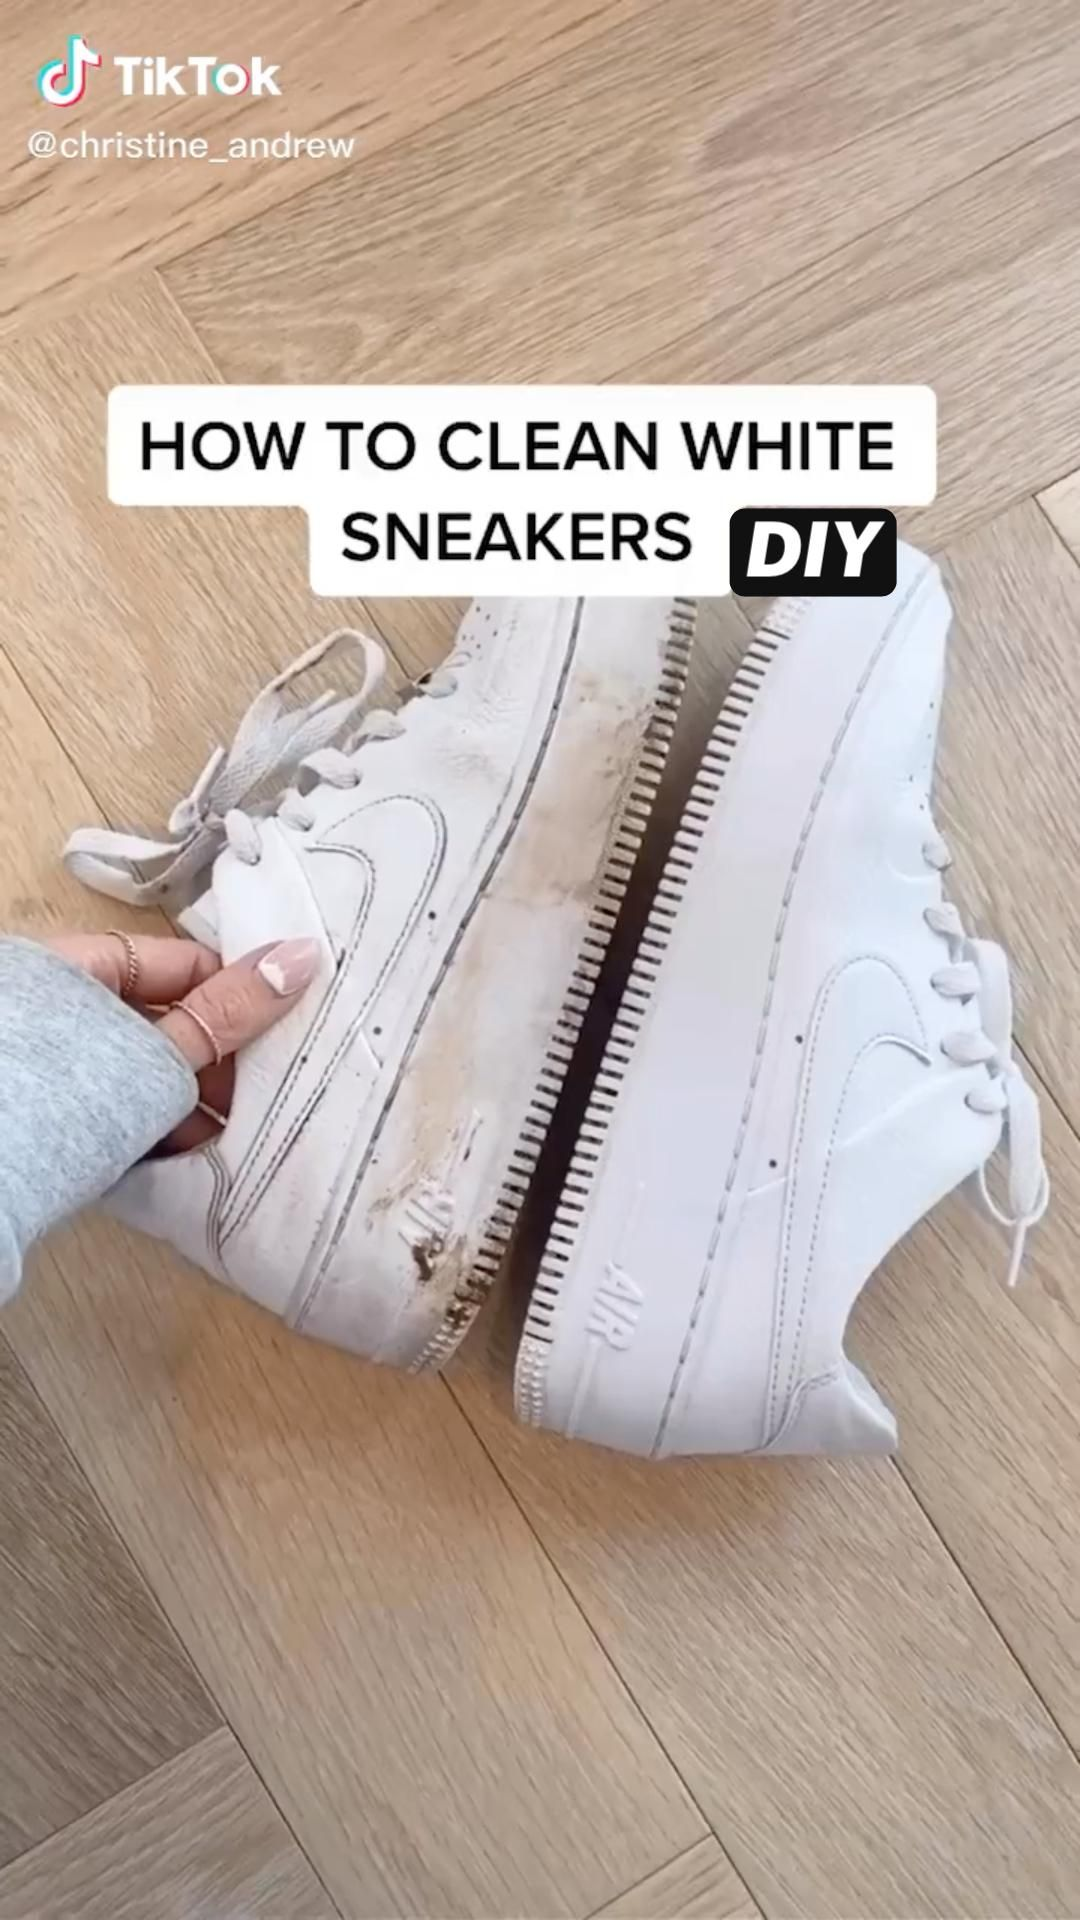 How to clean white sneakers (DIY)